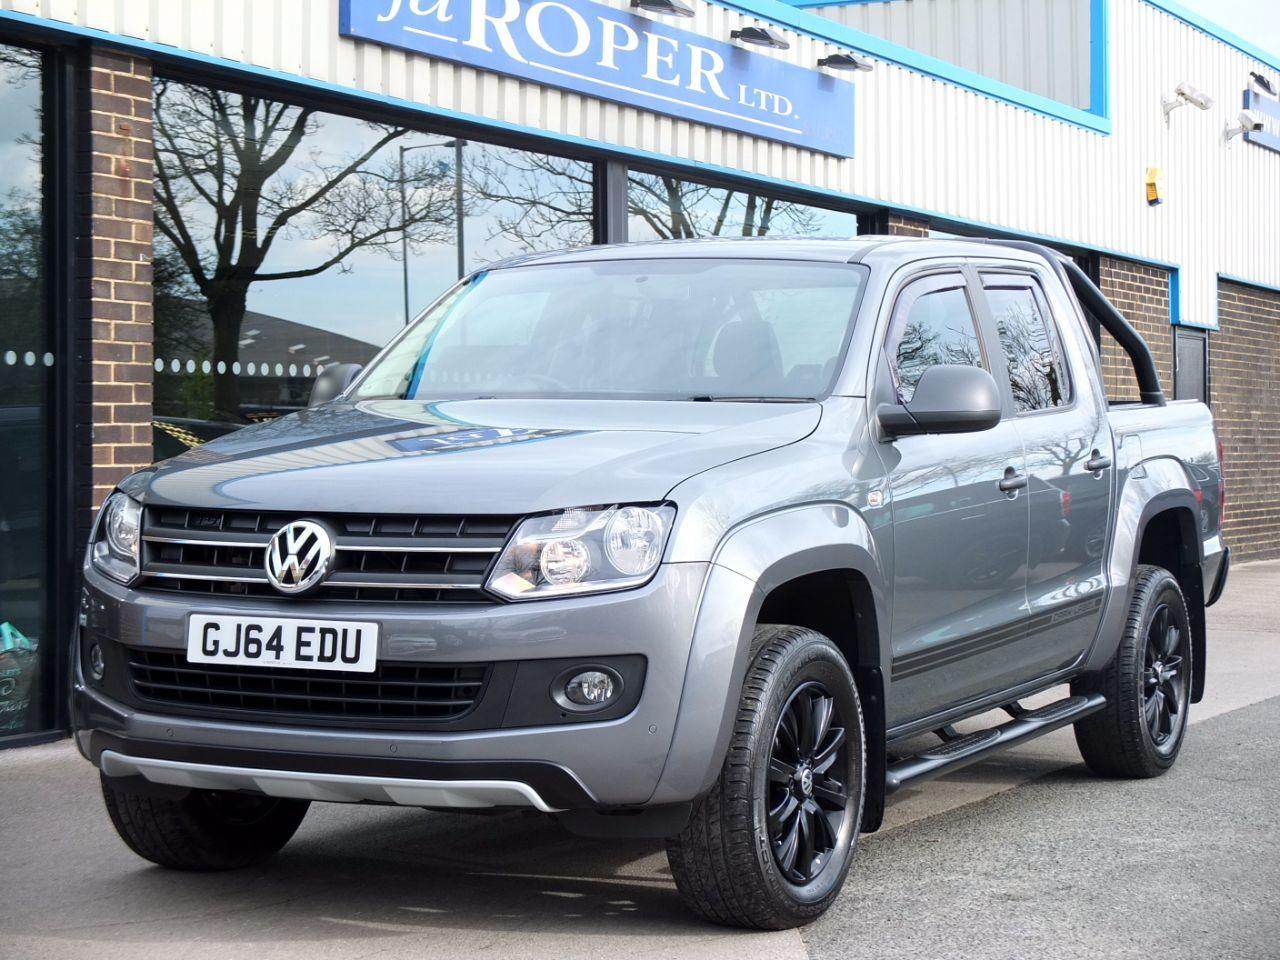 Volkswagen Amarok D/Cab Pick Up Dark Label 2.0 BiTDI 180 4Motion Auto Pick Up Diesel Natural Grey MetallicVolkswagen Amarok D/Cab Pick Up Dark Label 2.0 BiTDI 180 4Motion Auto Pick Up Diesel Natural Grey Metallic at fa Roper Ltd Bradford